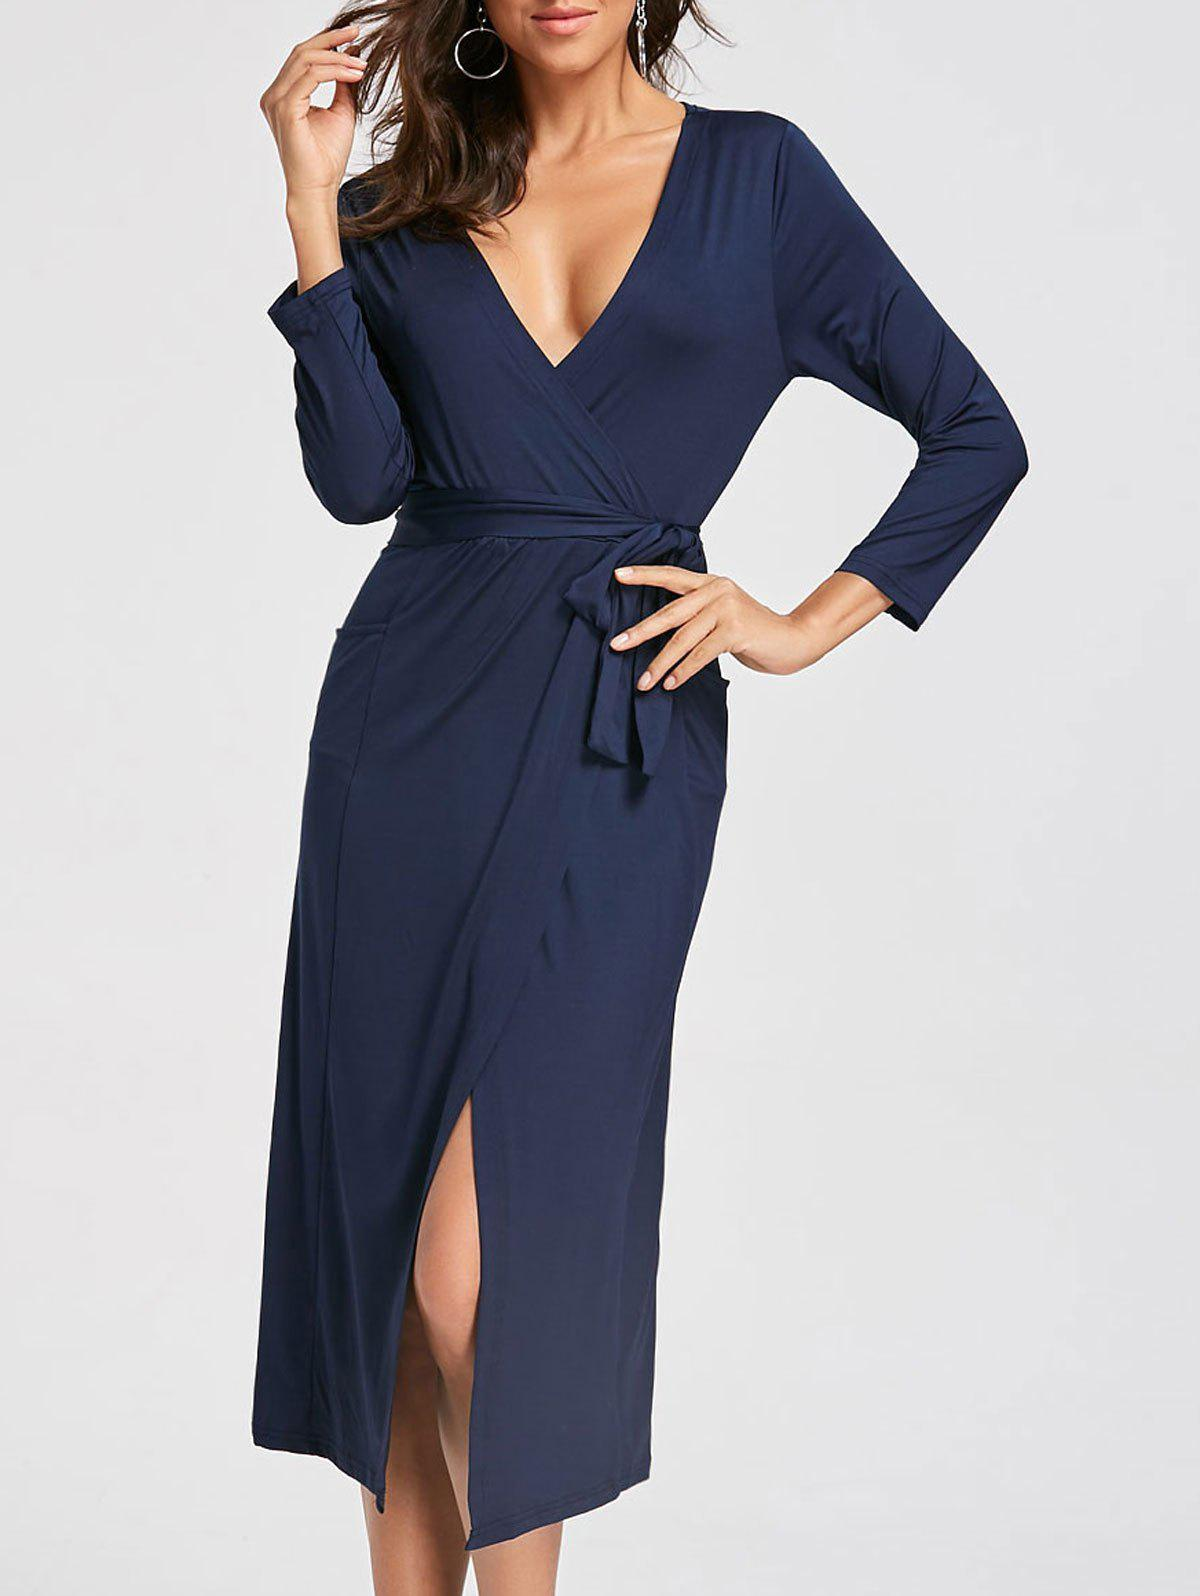 Plunging Neckline High Low Midi Dress - DEEP BLUE XL